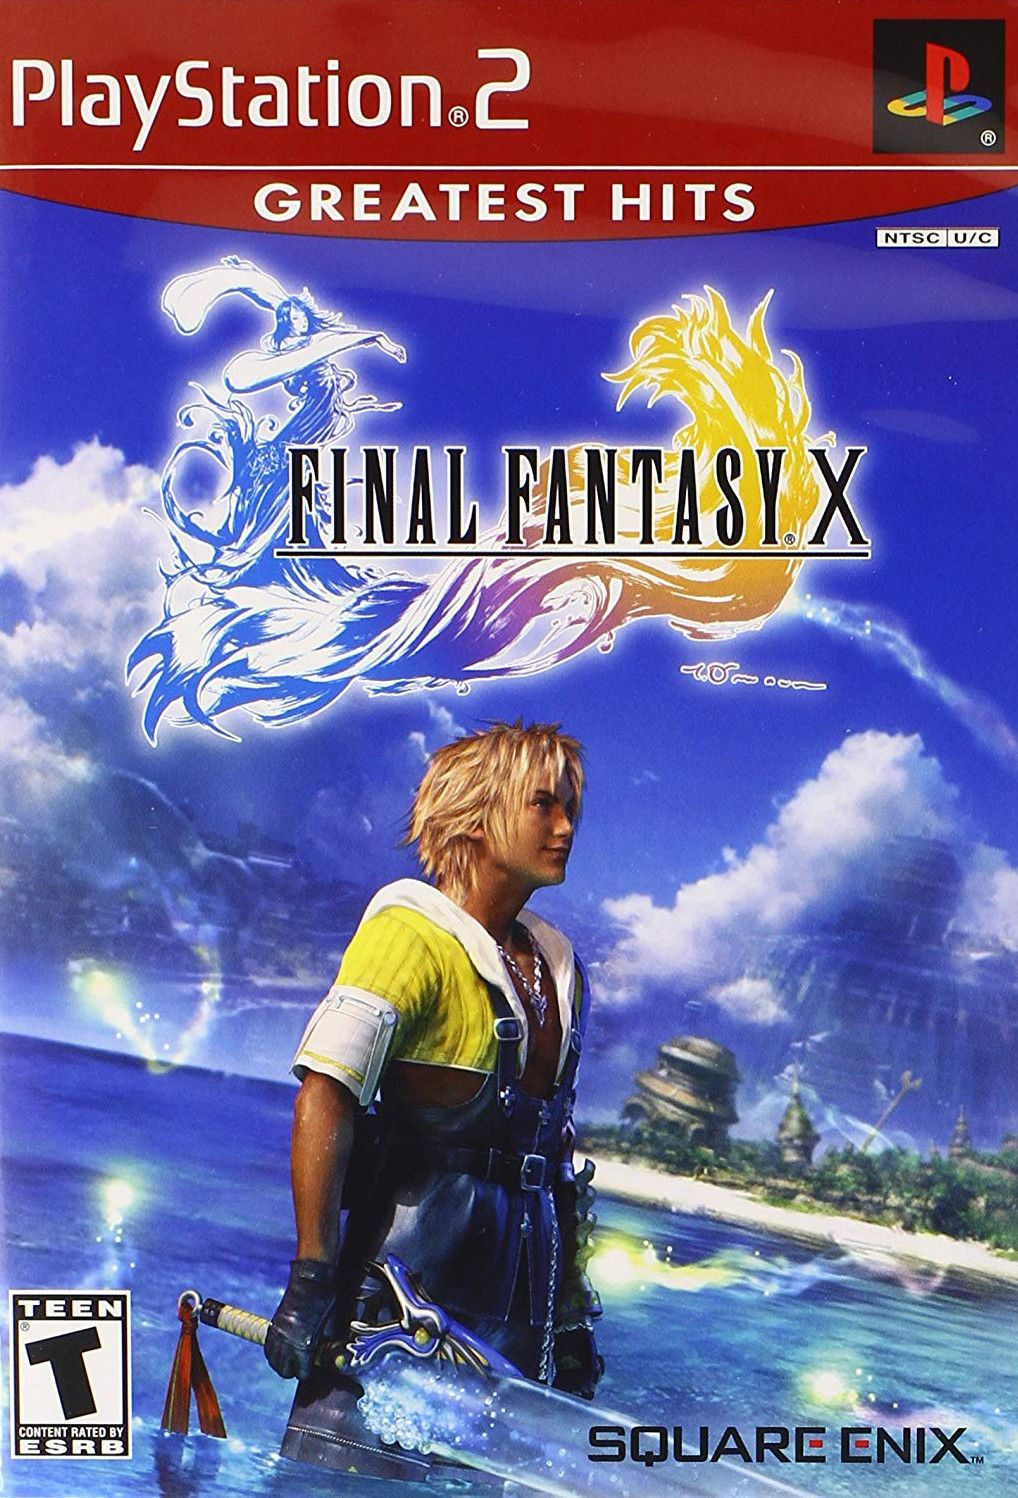 Finalfantasy x final fantasy x final fantasy ps2 games